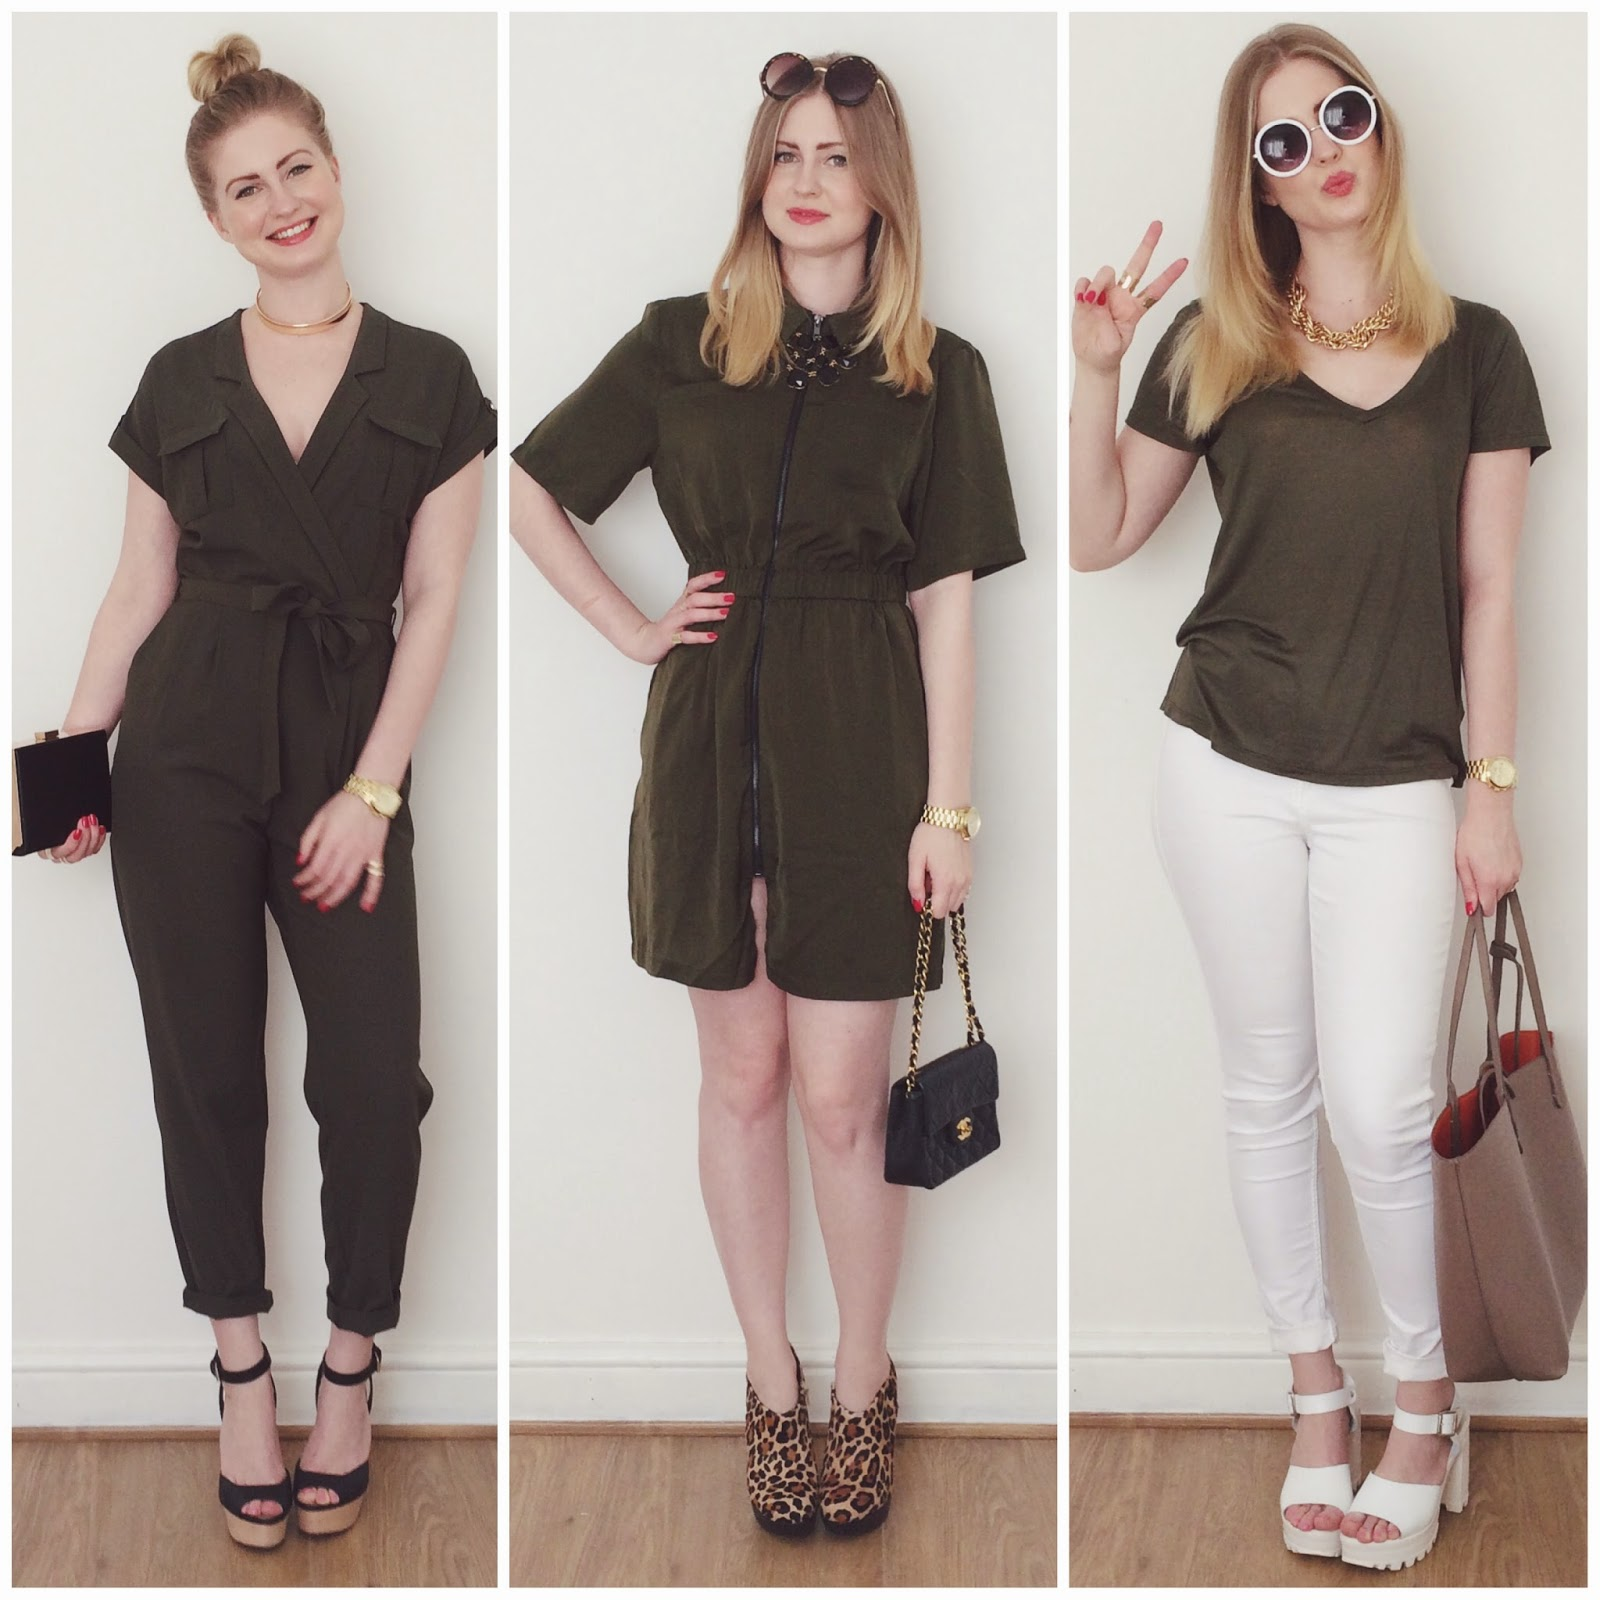 FashionFake, UK fashion and lifestyle blog, khaki style edit, khaki lookbook